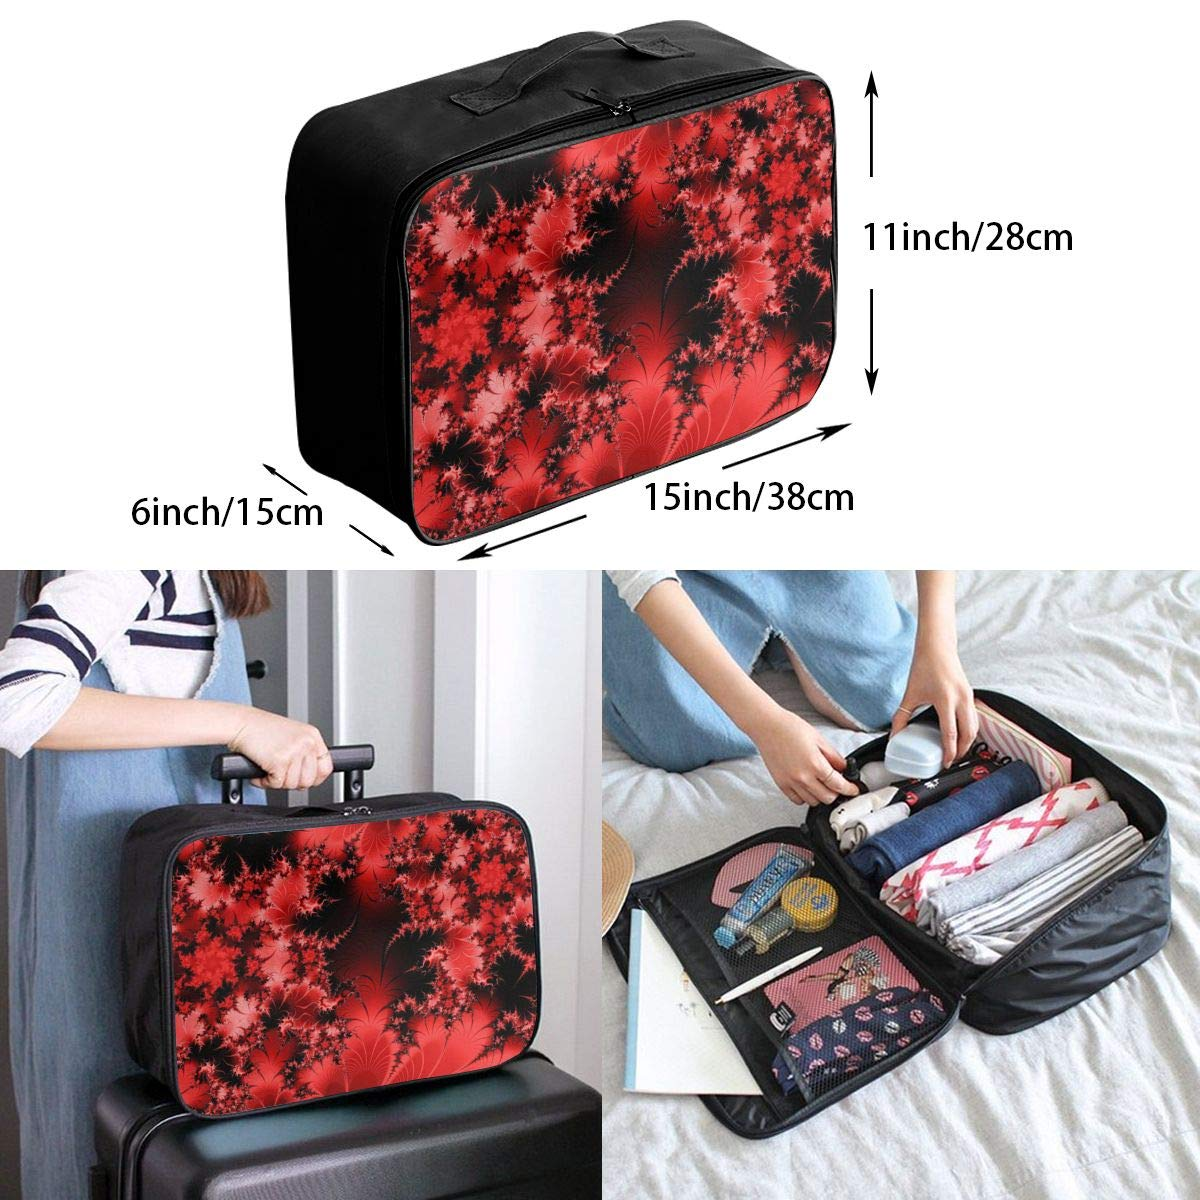 Travel Luggage Duffle Bag Lightweight Portable Handbag Abstract Red Floral Print Large Capacity Waterproof Foldable Storage Tote